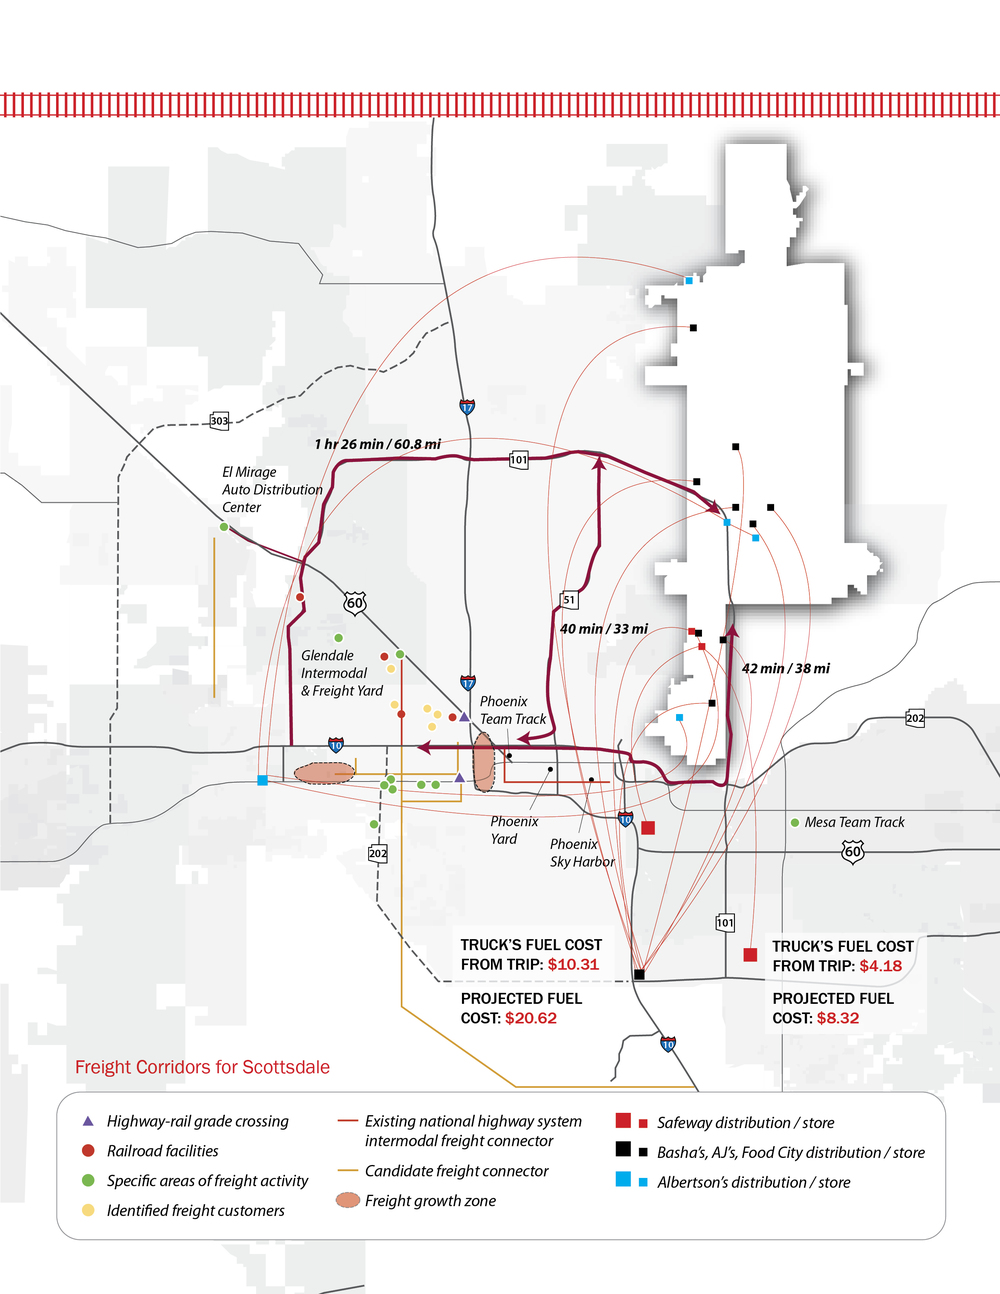 At the metropolitan scale, Scottsdale is in an increasingly unfavorable logistics situation.  The freight logistics hub is moving outwards and away from Scottsdale's business and retail hubs.  During the time of this report, when oil prices spiked, the company with the longest supply change on this map went bankrupt.